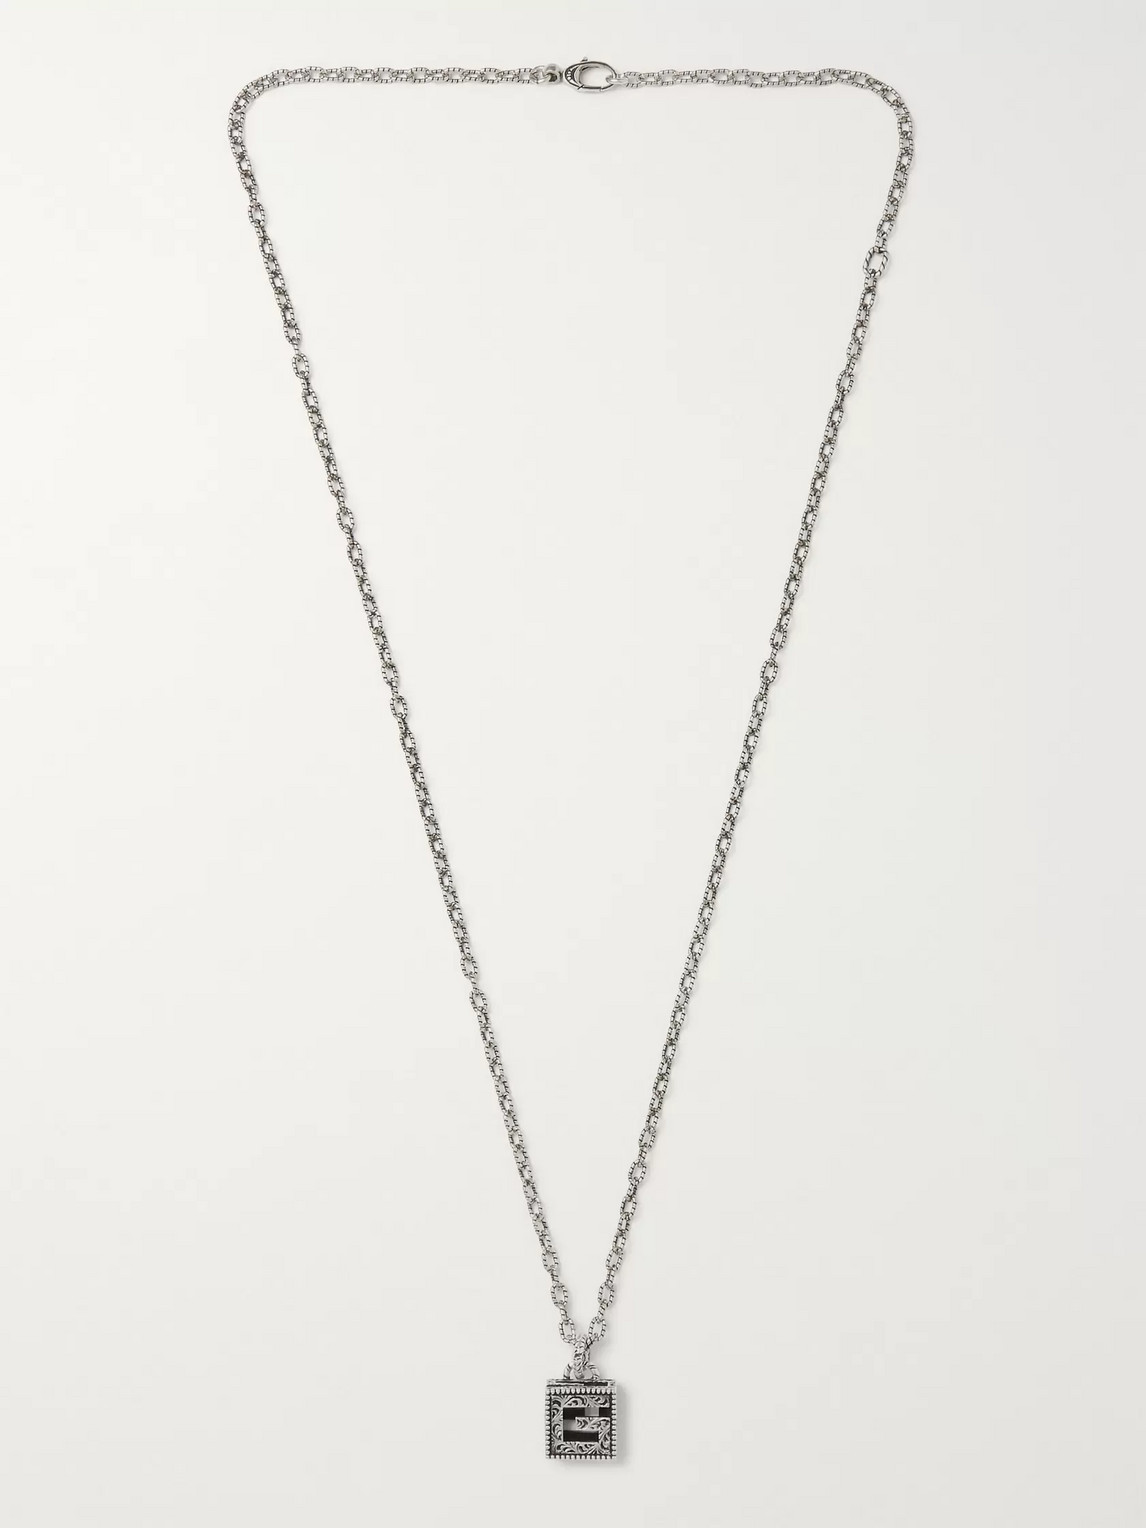 gucci - engraved burnished sterling silver necklace - men - silver